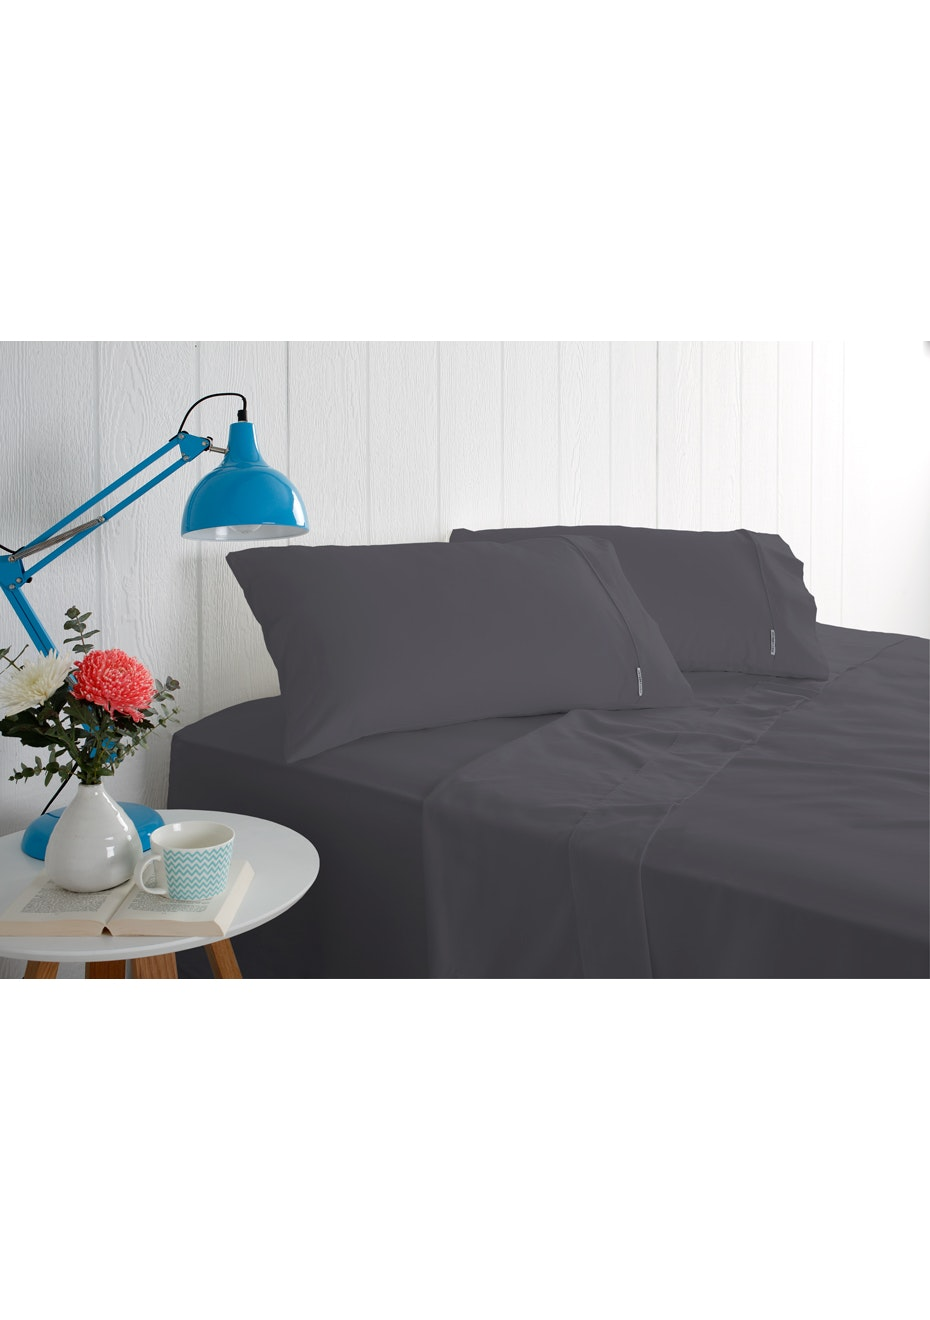 Odyssey Living 1000 Thread Count – Cotton Rich Sheet Sets -Charcoal - King Bed